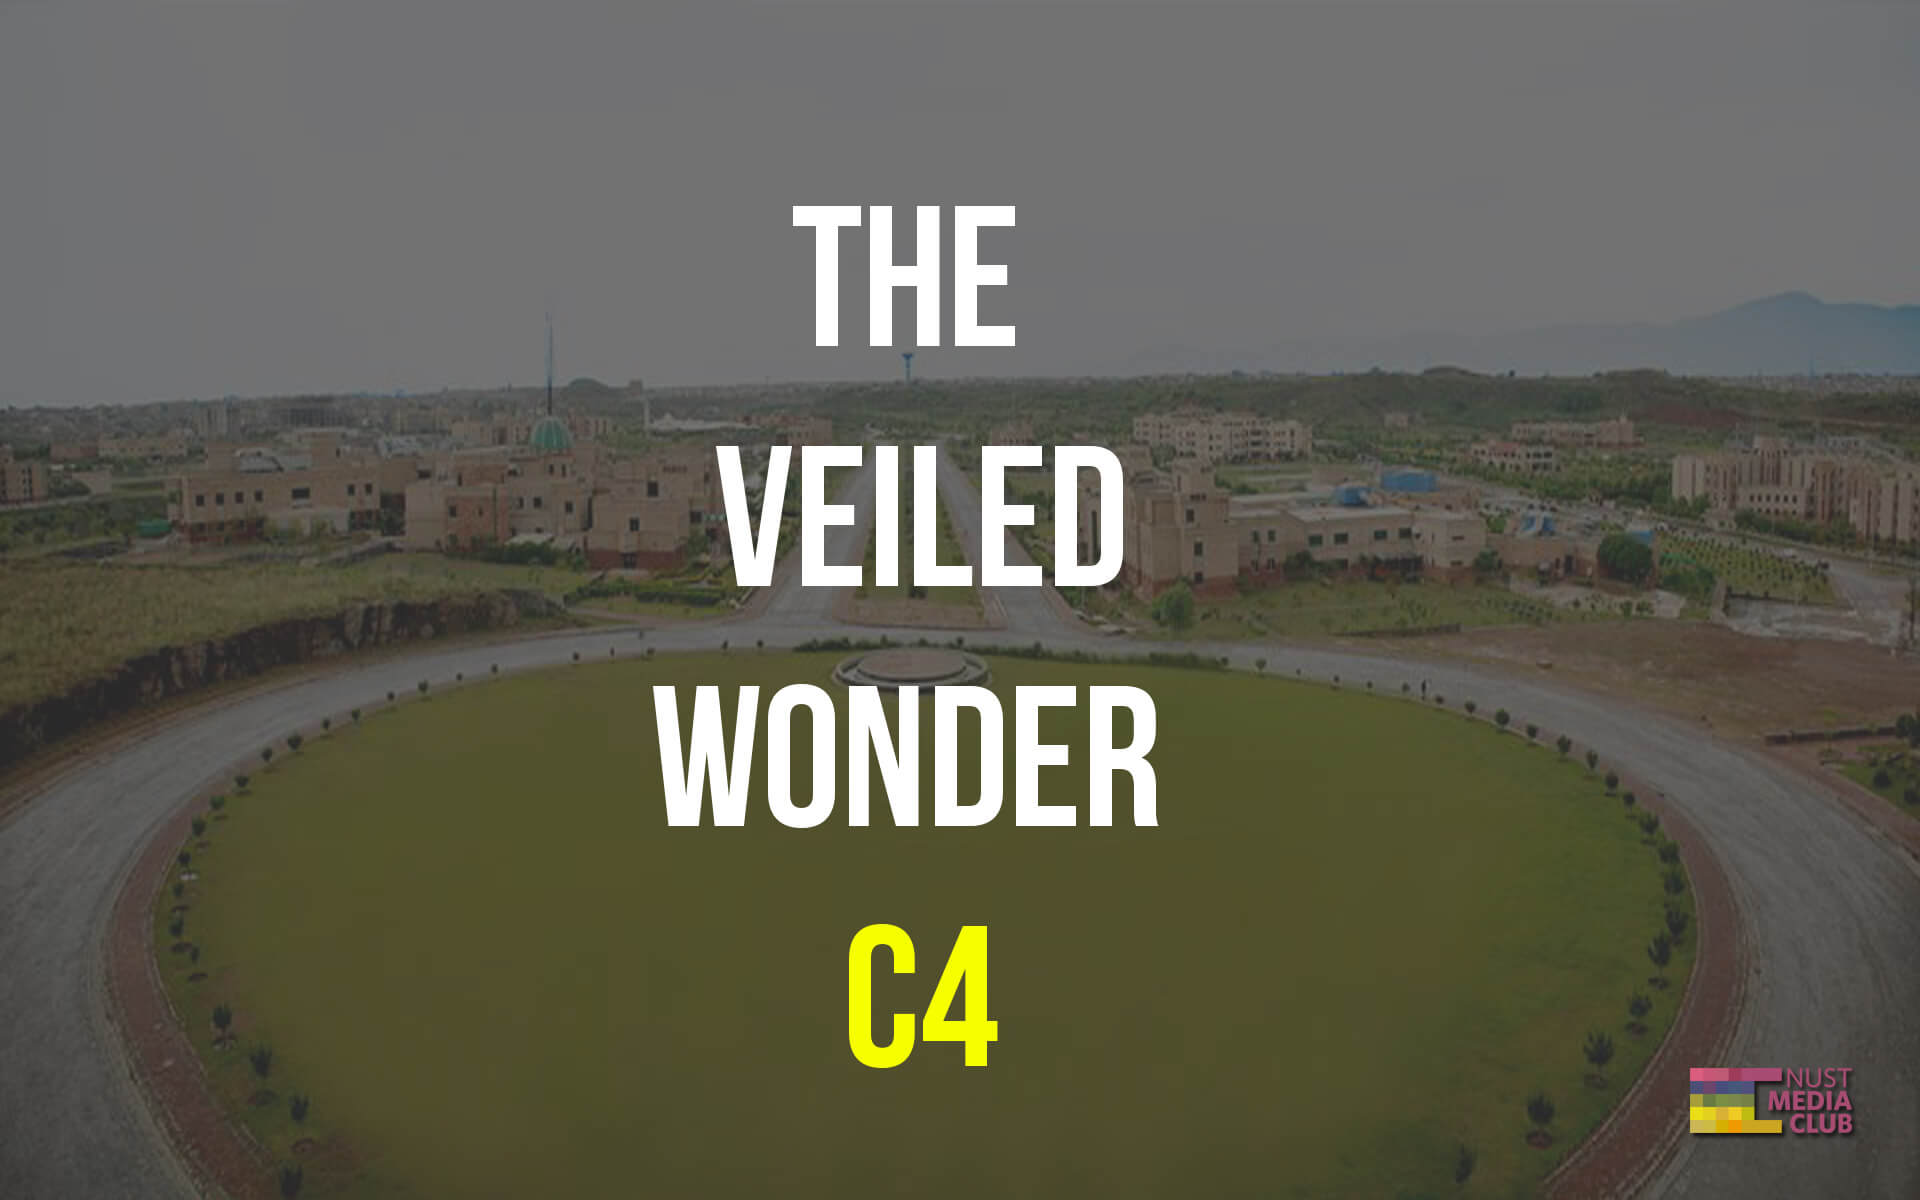 The Veiled Wonder: C4